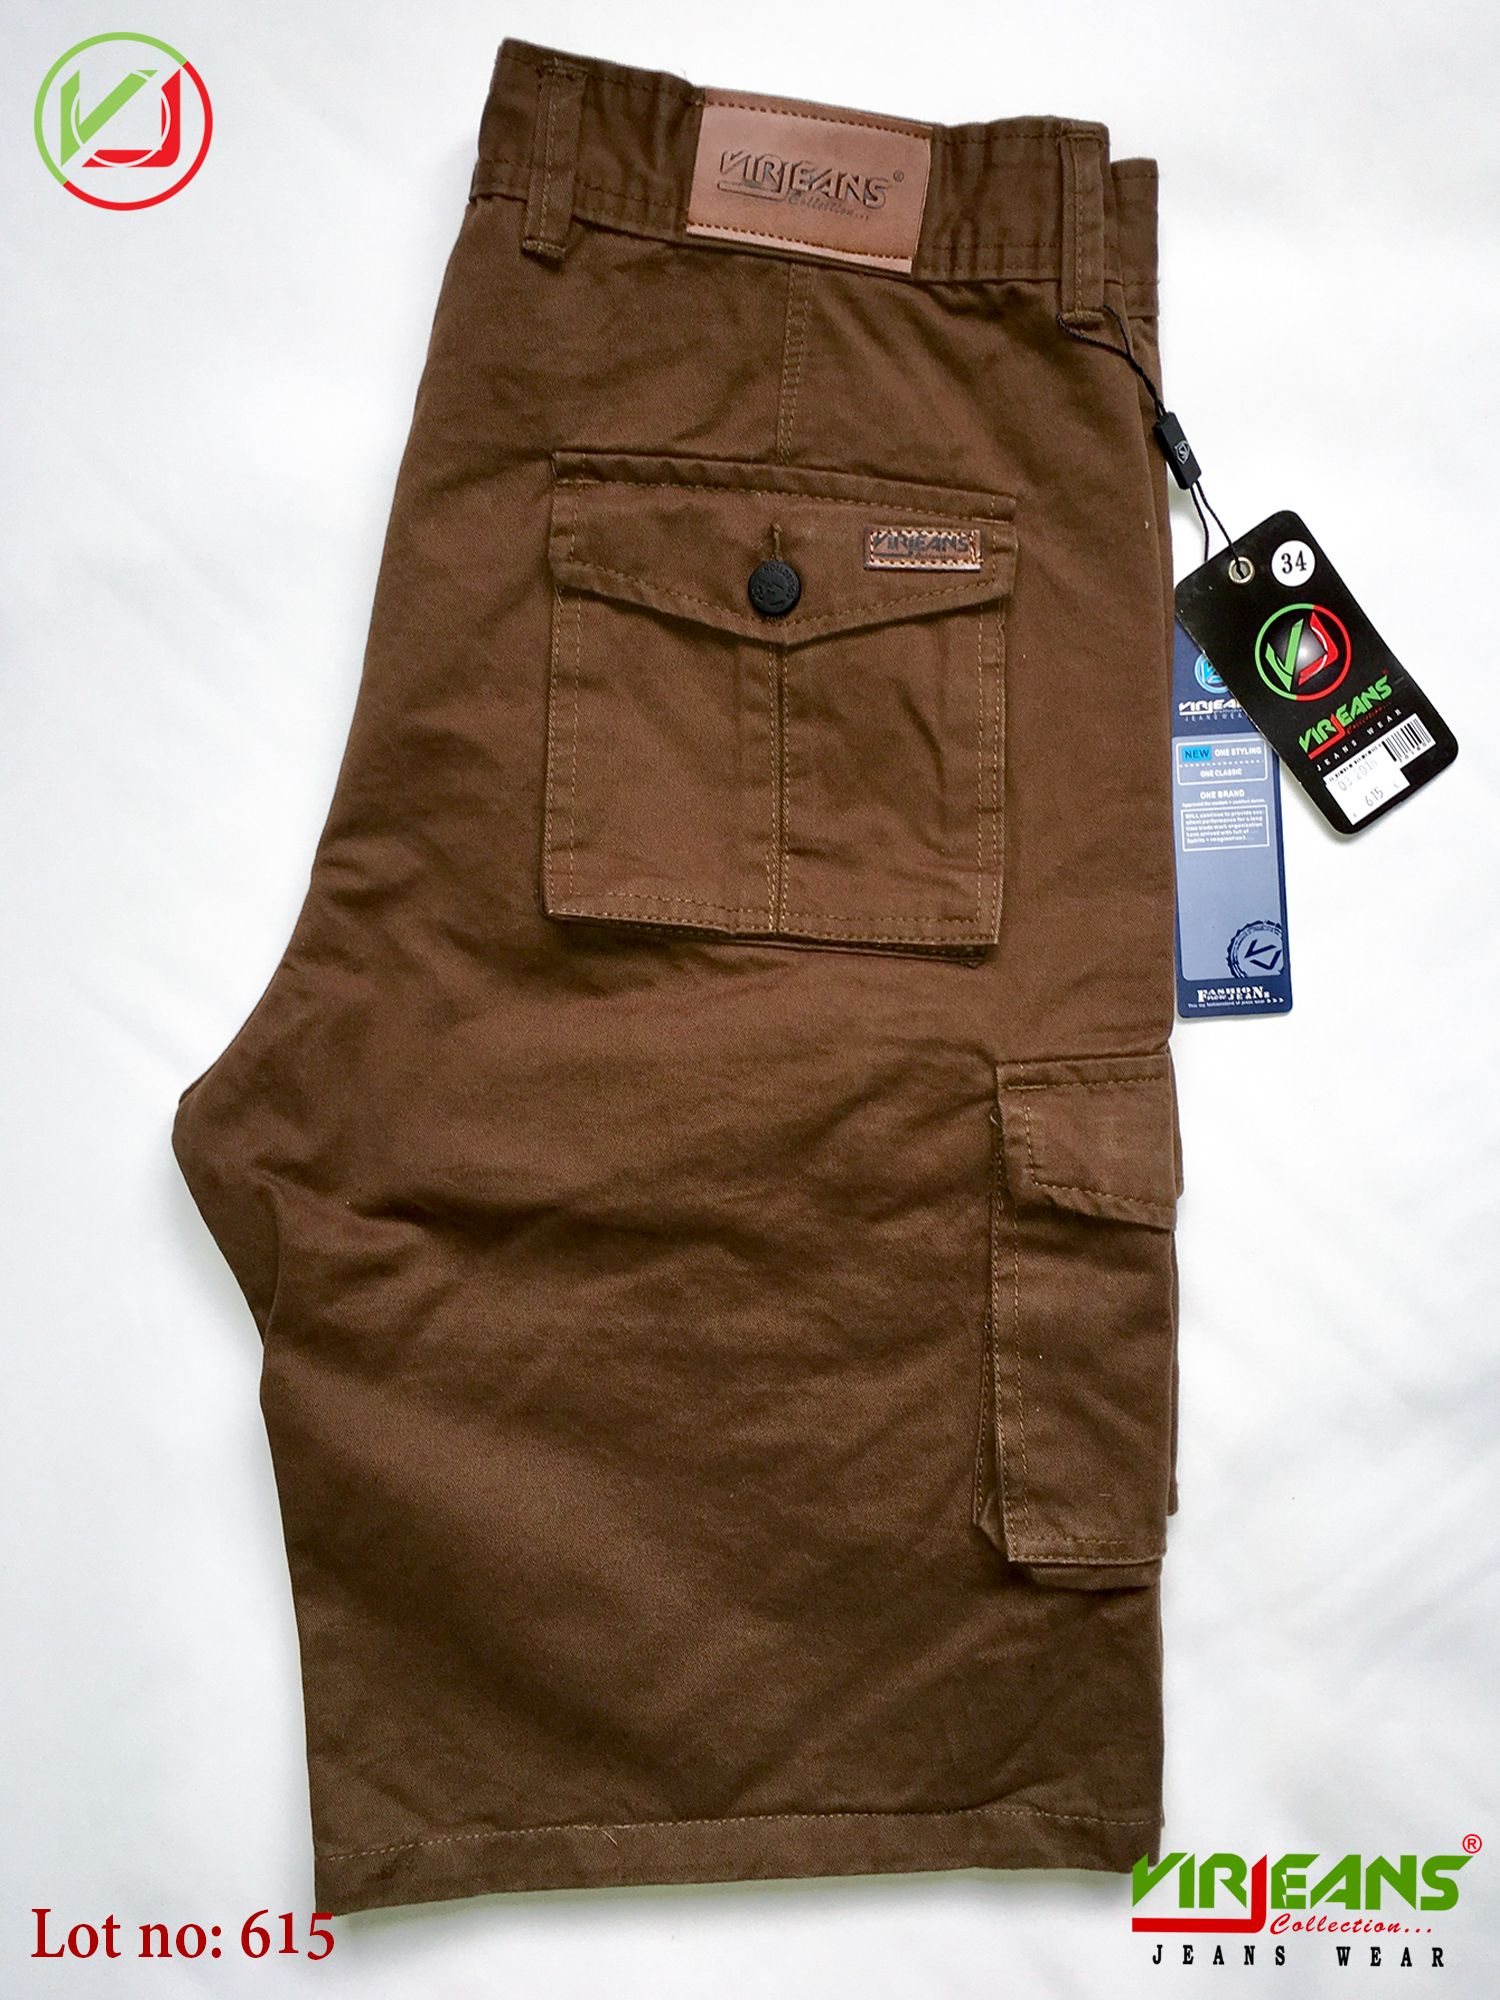 ee9fe48f Virjeans    Twill Box Half Pants. Available in different Color & Size.